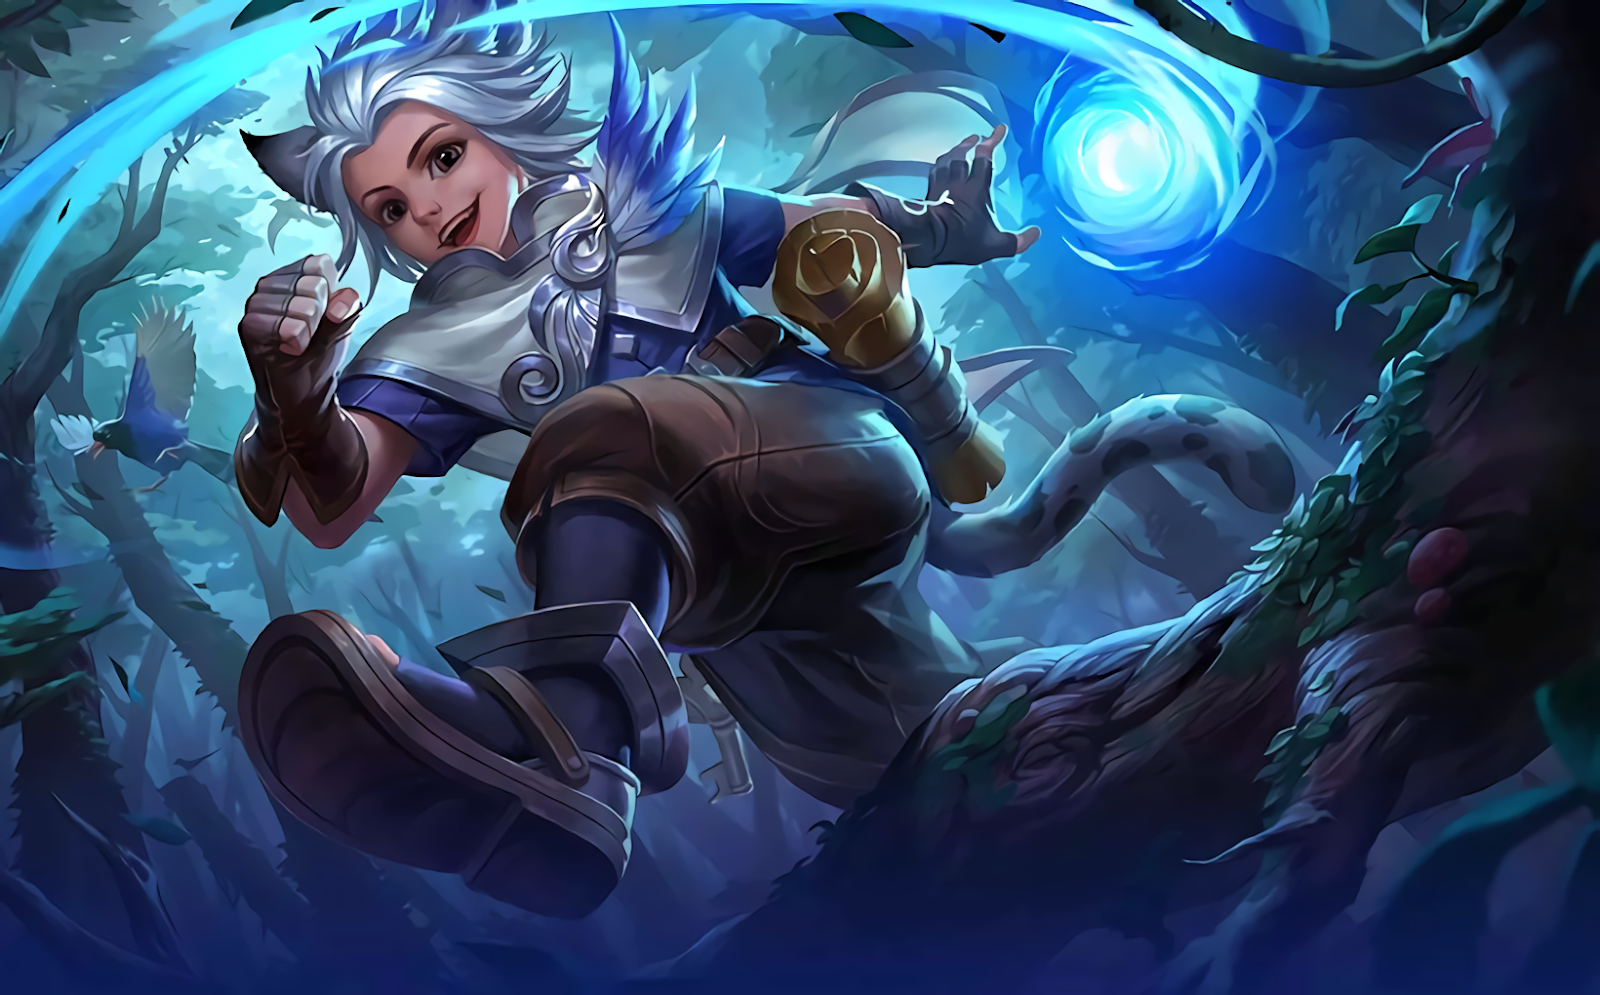 Mobile Legends Wallpapers Hd Harith Wallpaper Hd New Hero